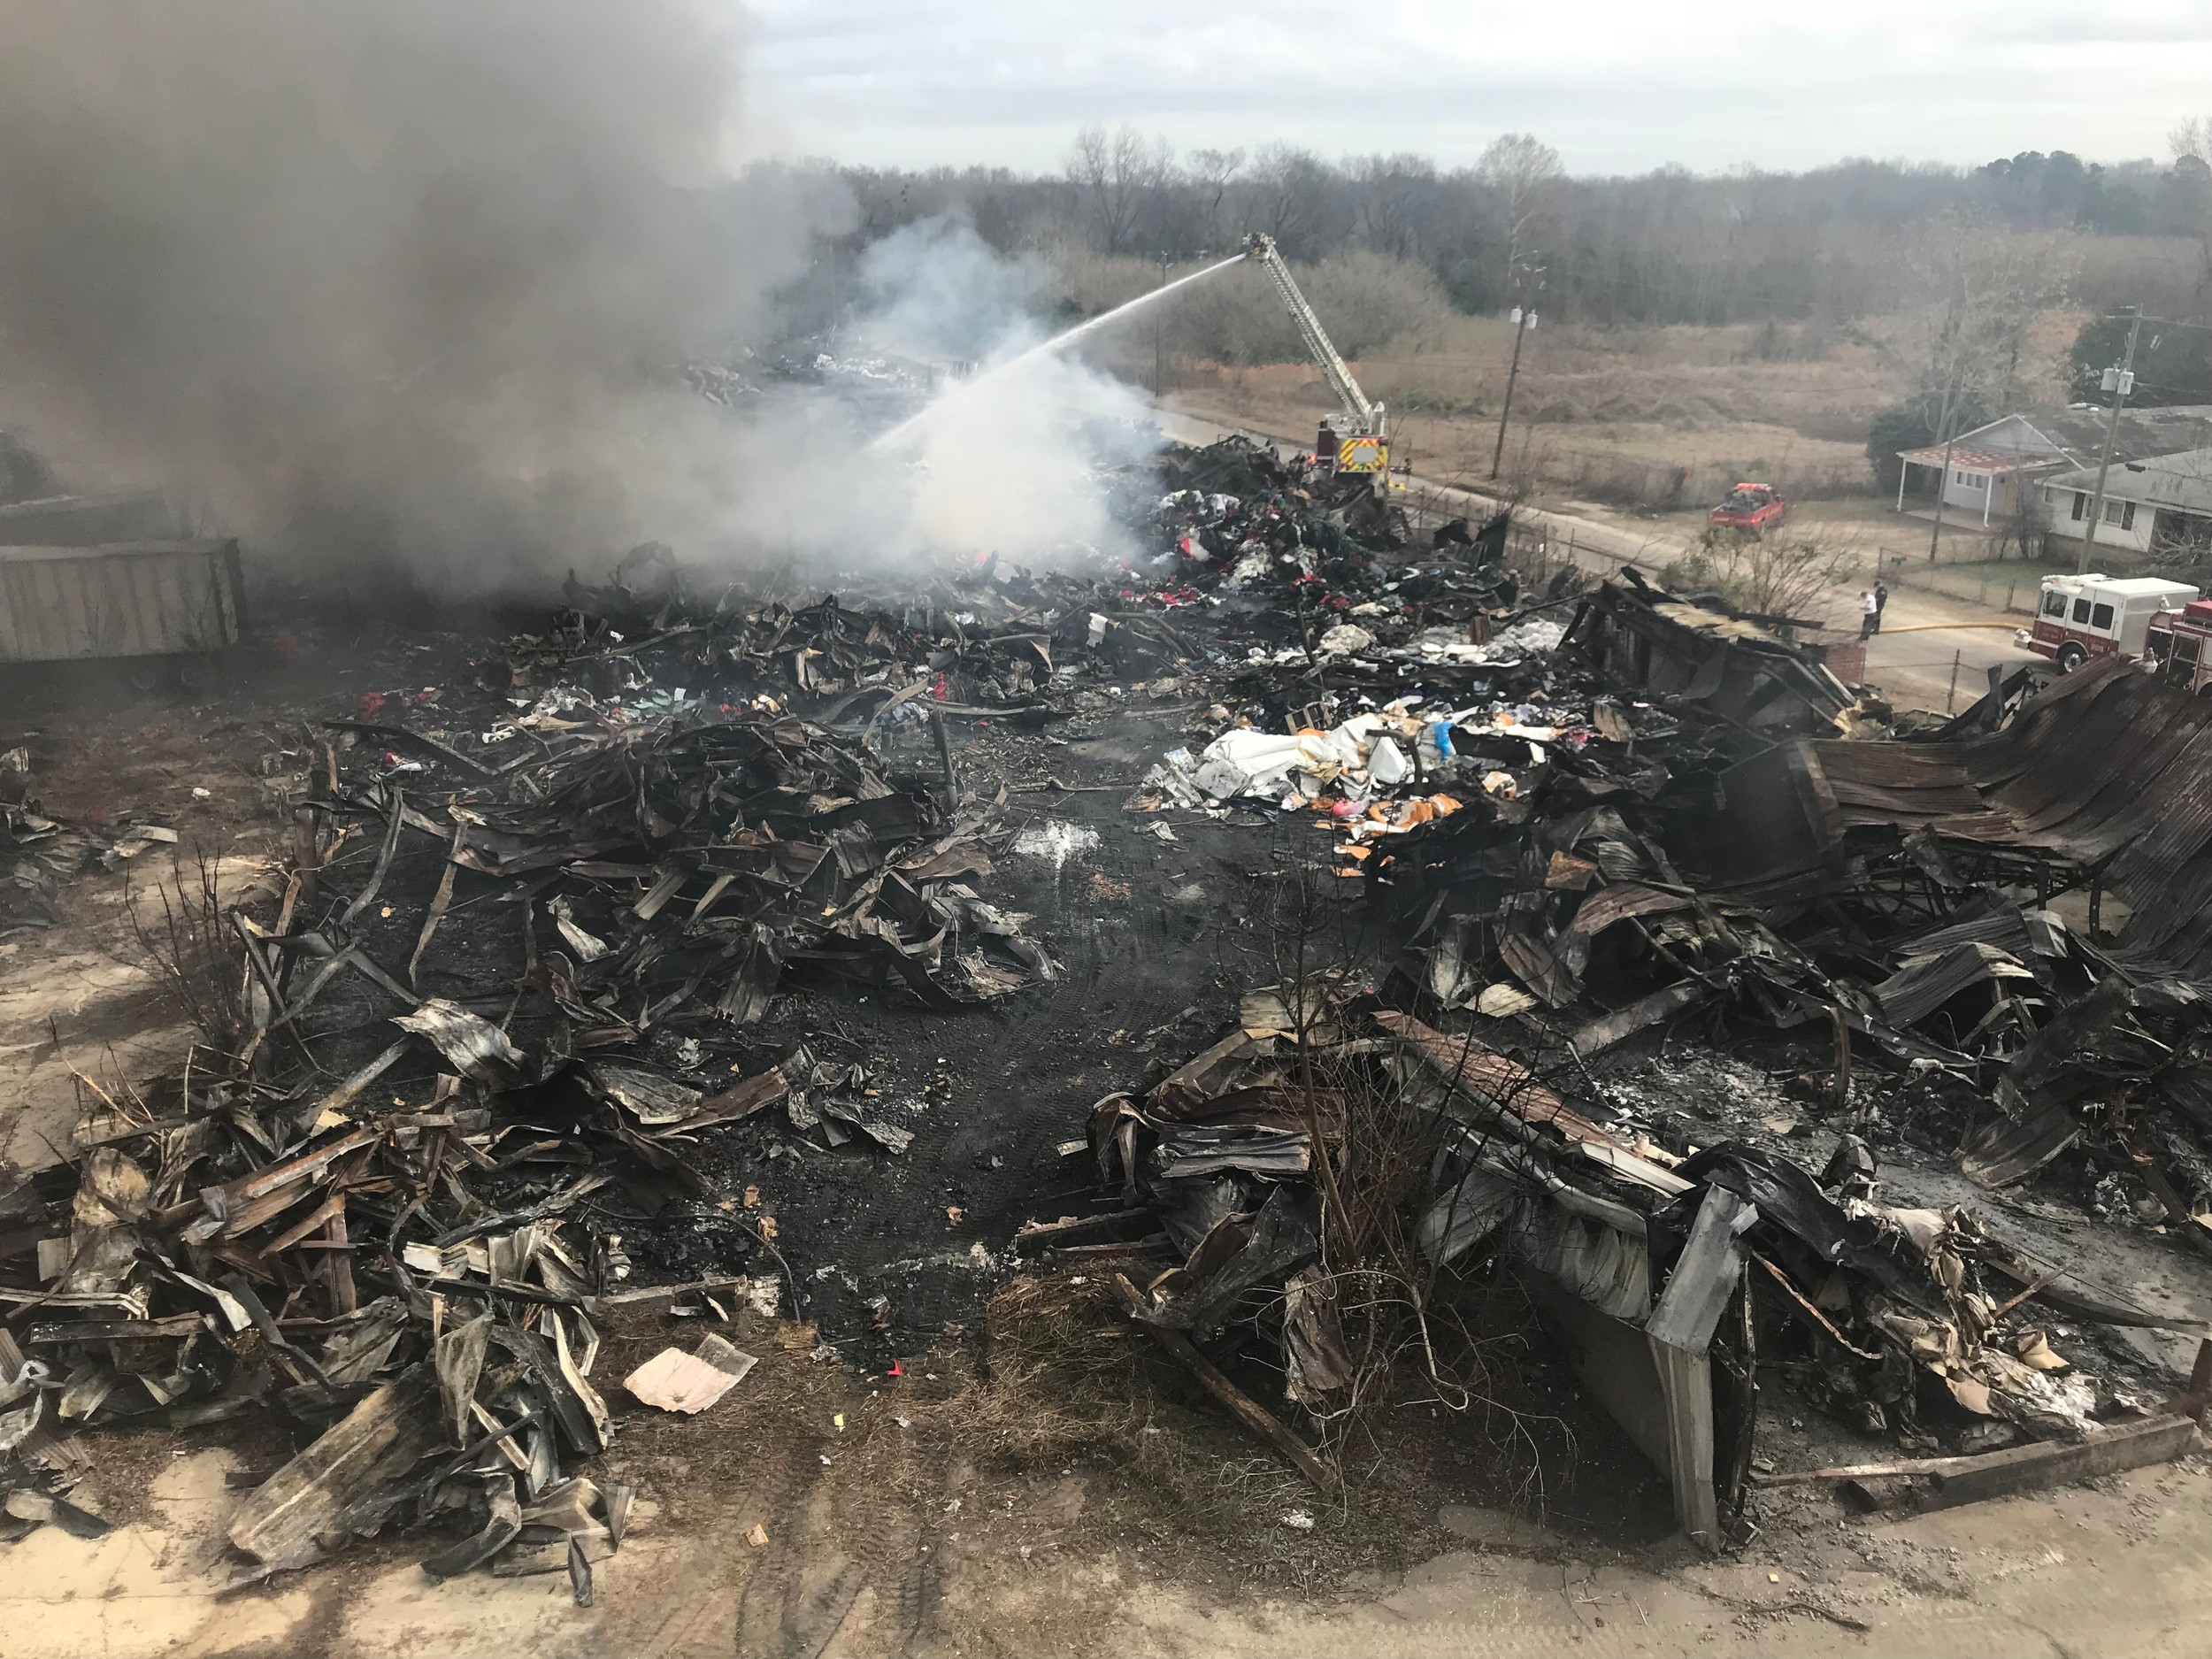 Materials still in the rubble of the warehouse that burned on Friday in Sumter are reigniting hot spots.